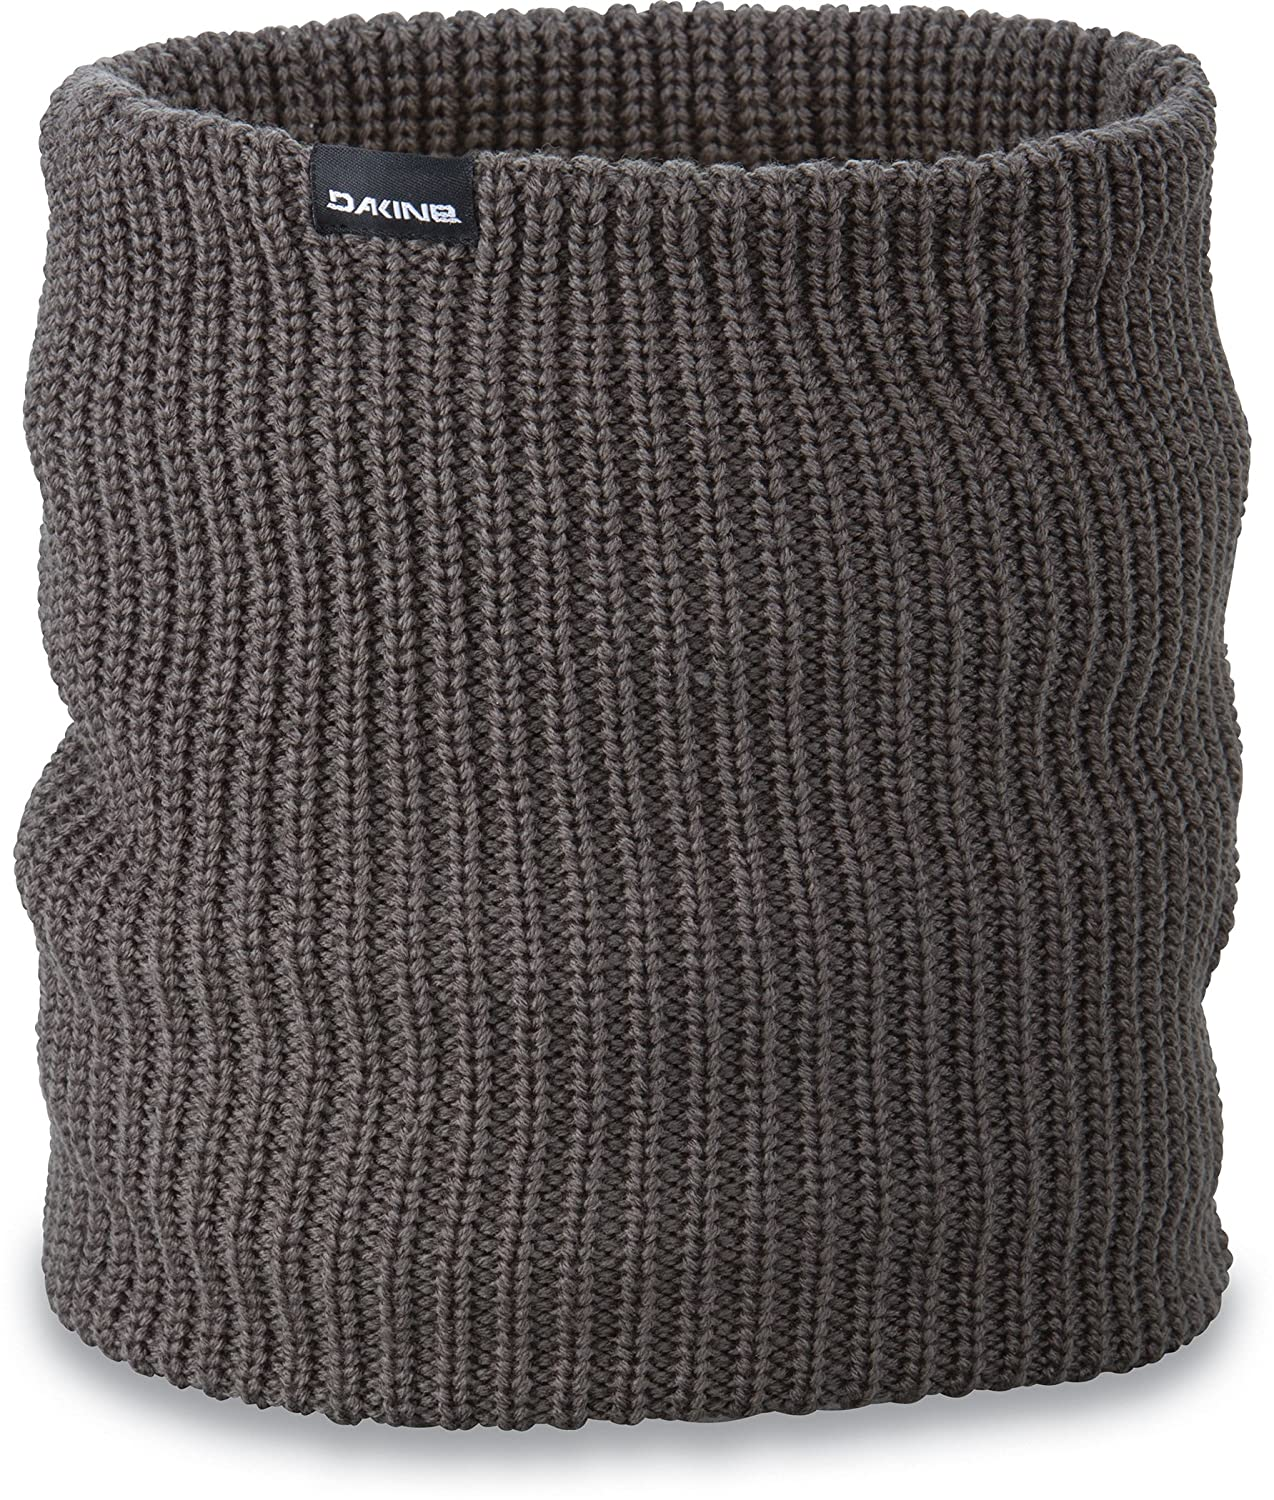 Snow Facemask Dakine Tall Boy Neck Tube One Size